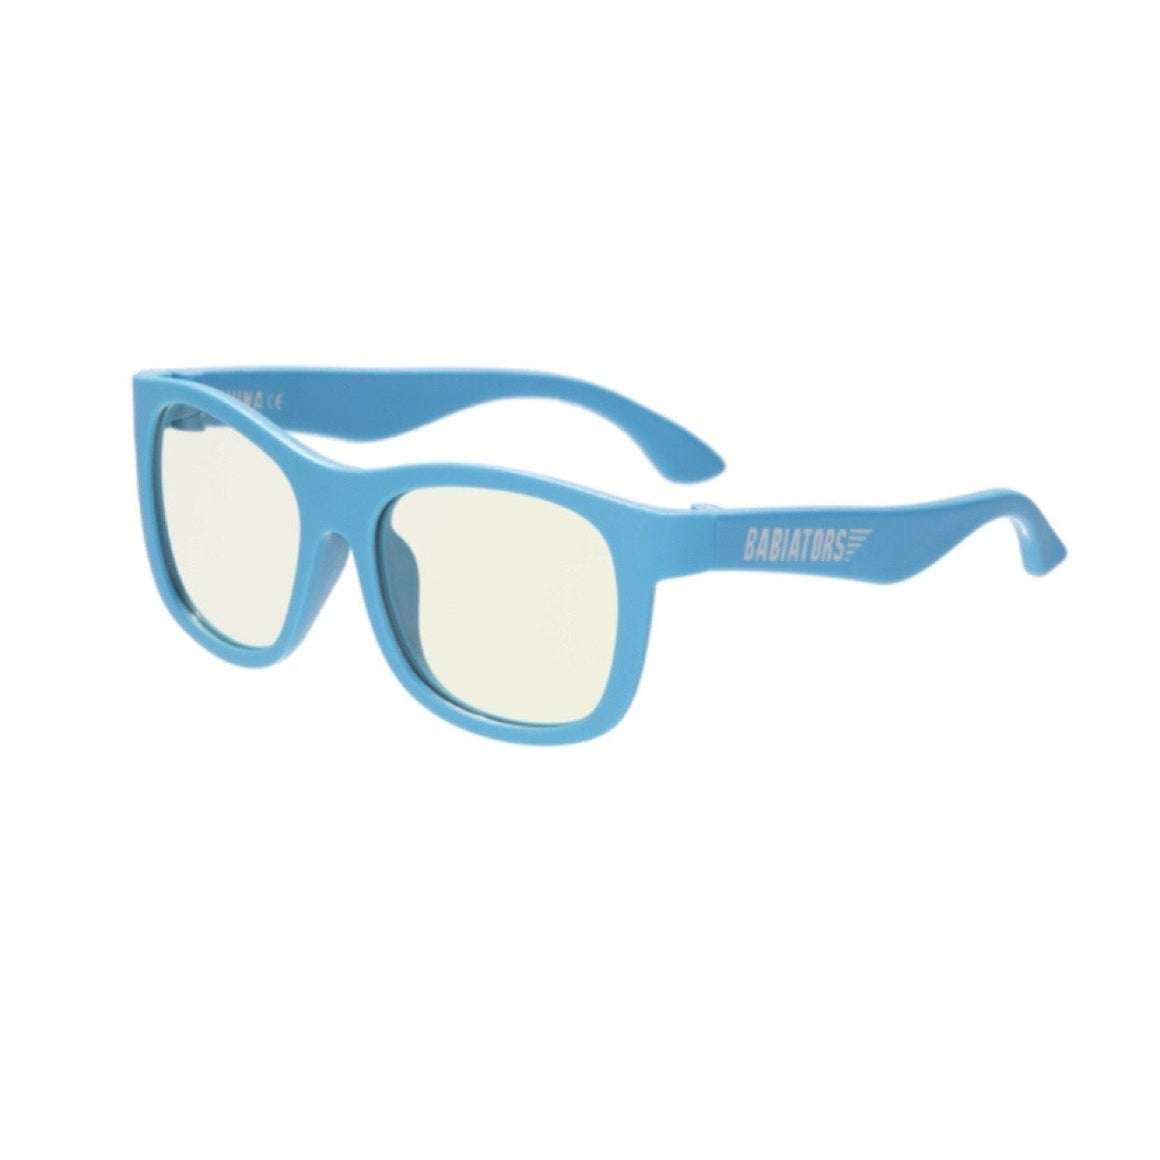 Babiators Navigator Screen Saver - Blue Crush Sunglasses Babiators